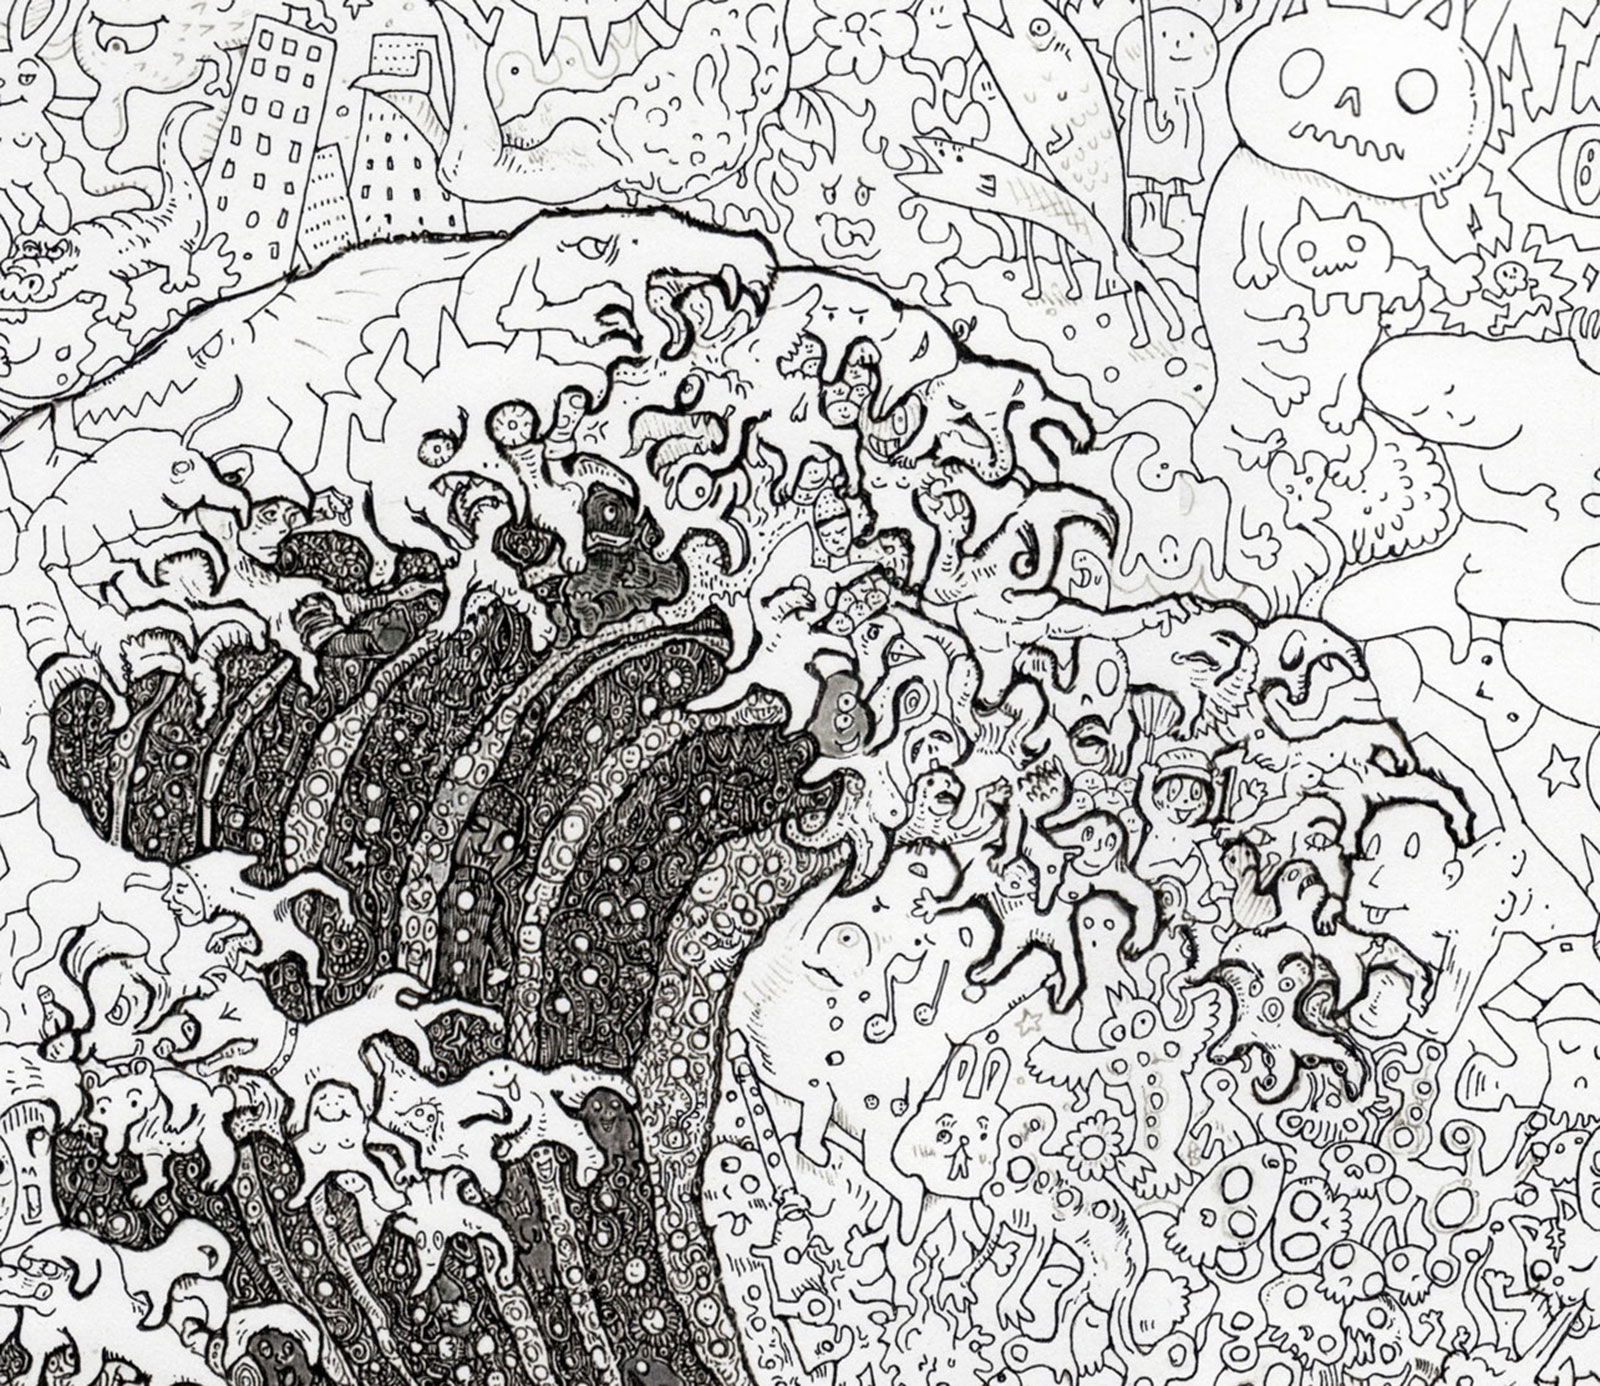 Japanese artist reimagines masterpieces with manga cnn style